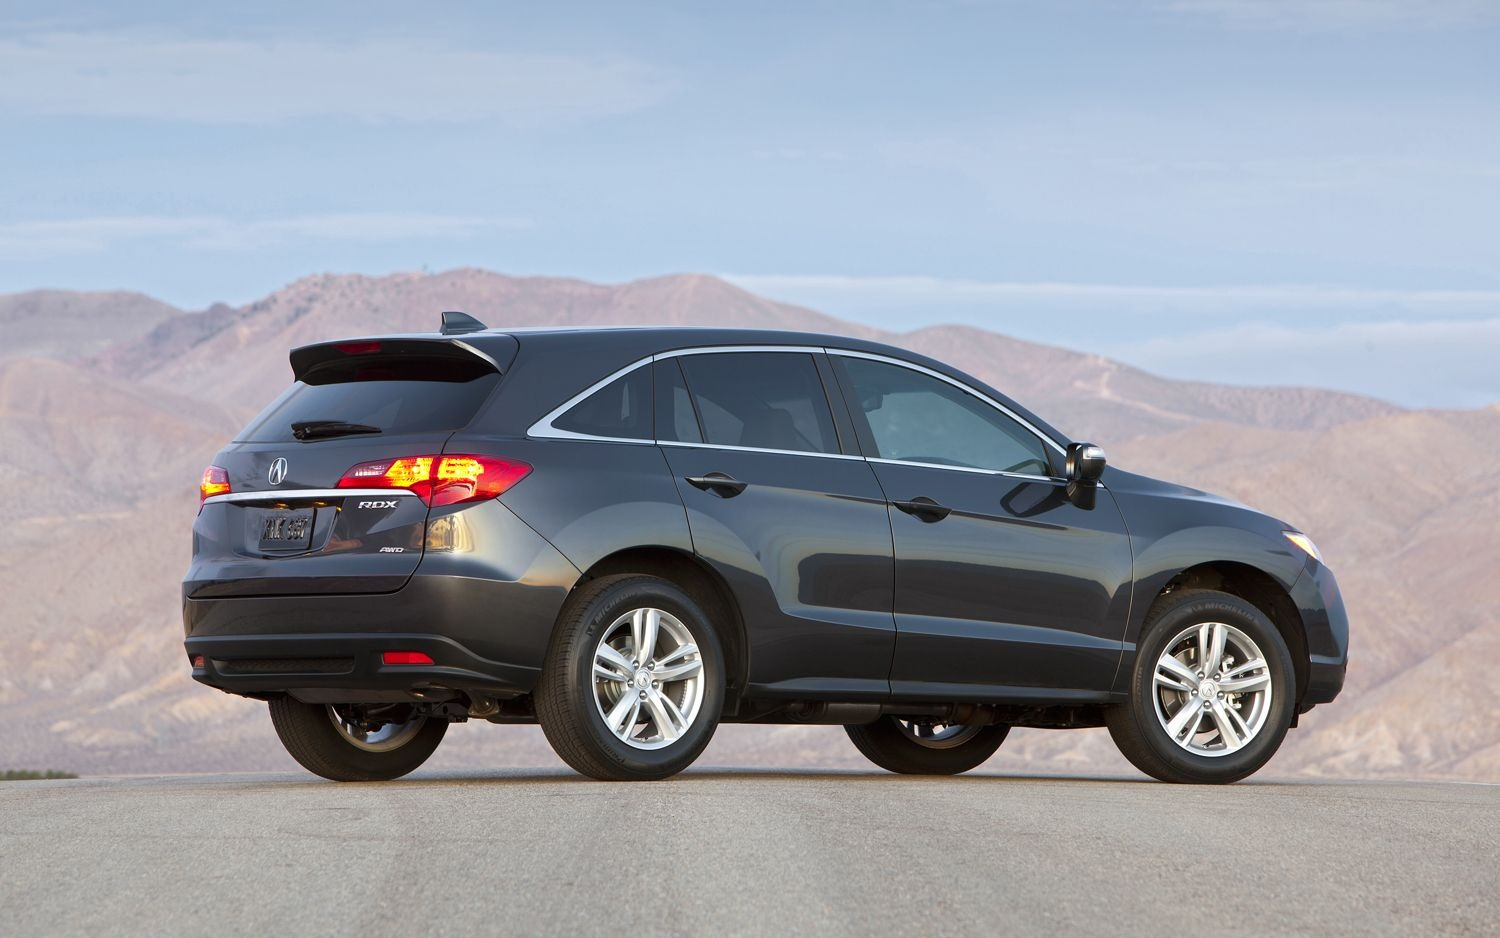 official photos of 2013 acura ilx sedan and rdx crossover. Black Bedroom Furniture Sets. Home Design Ideas